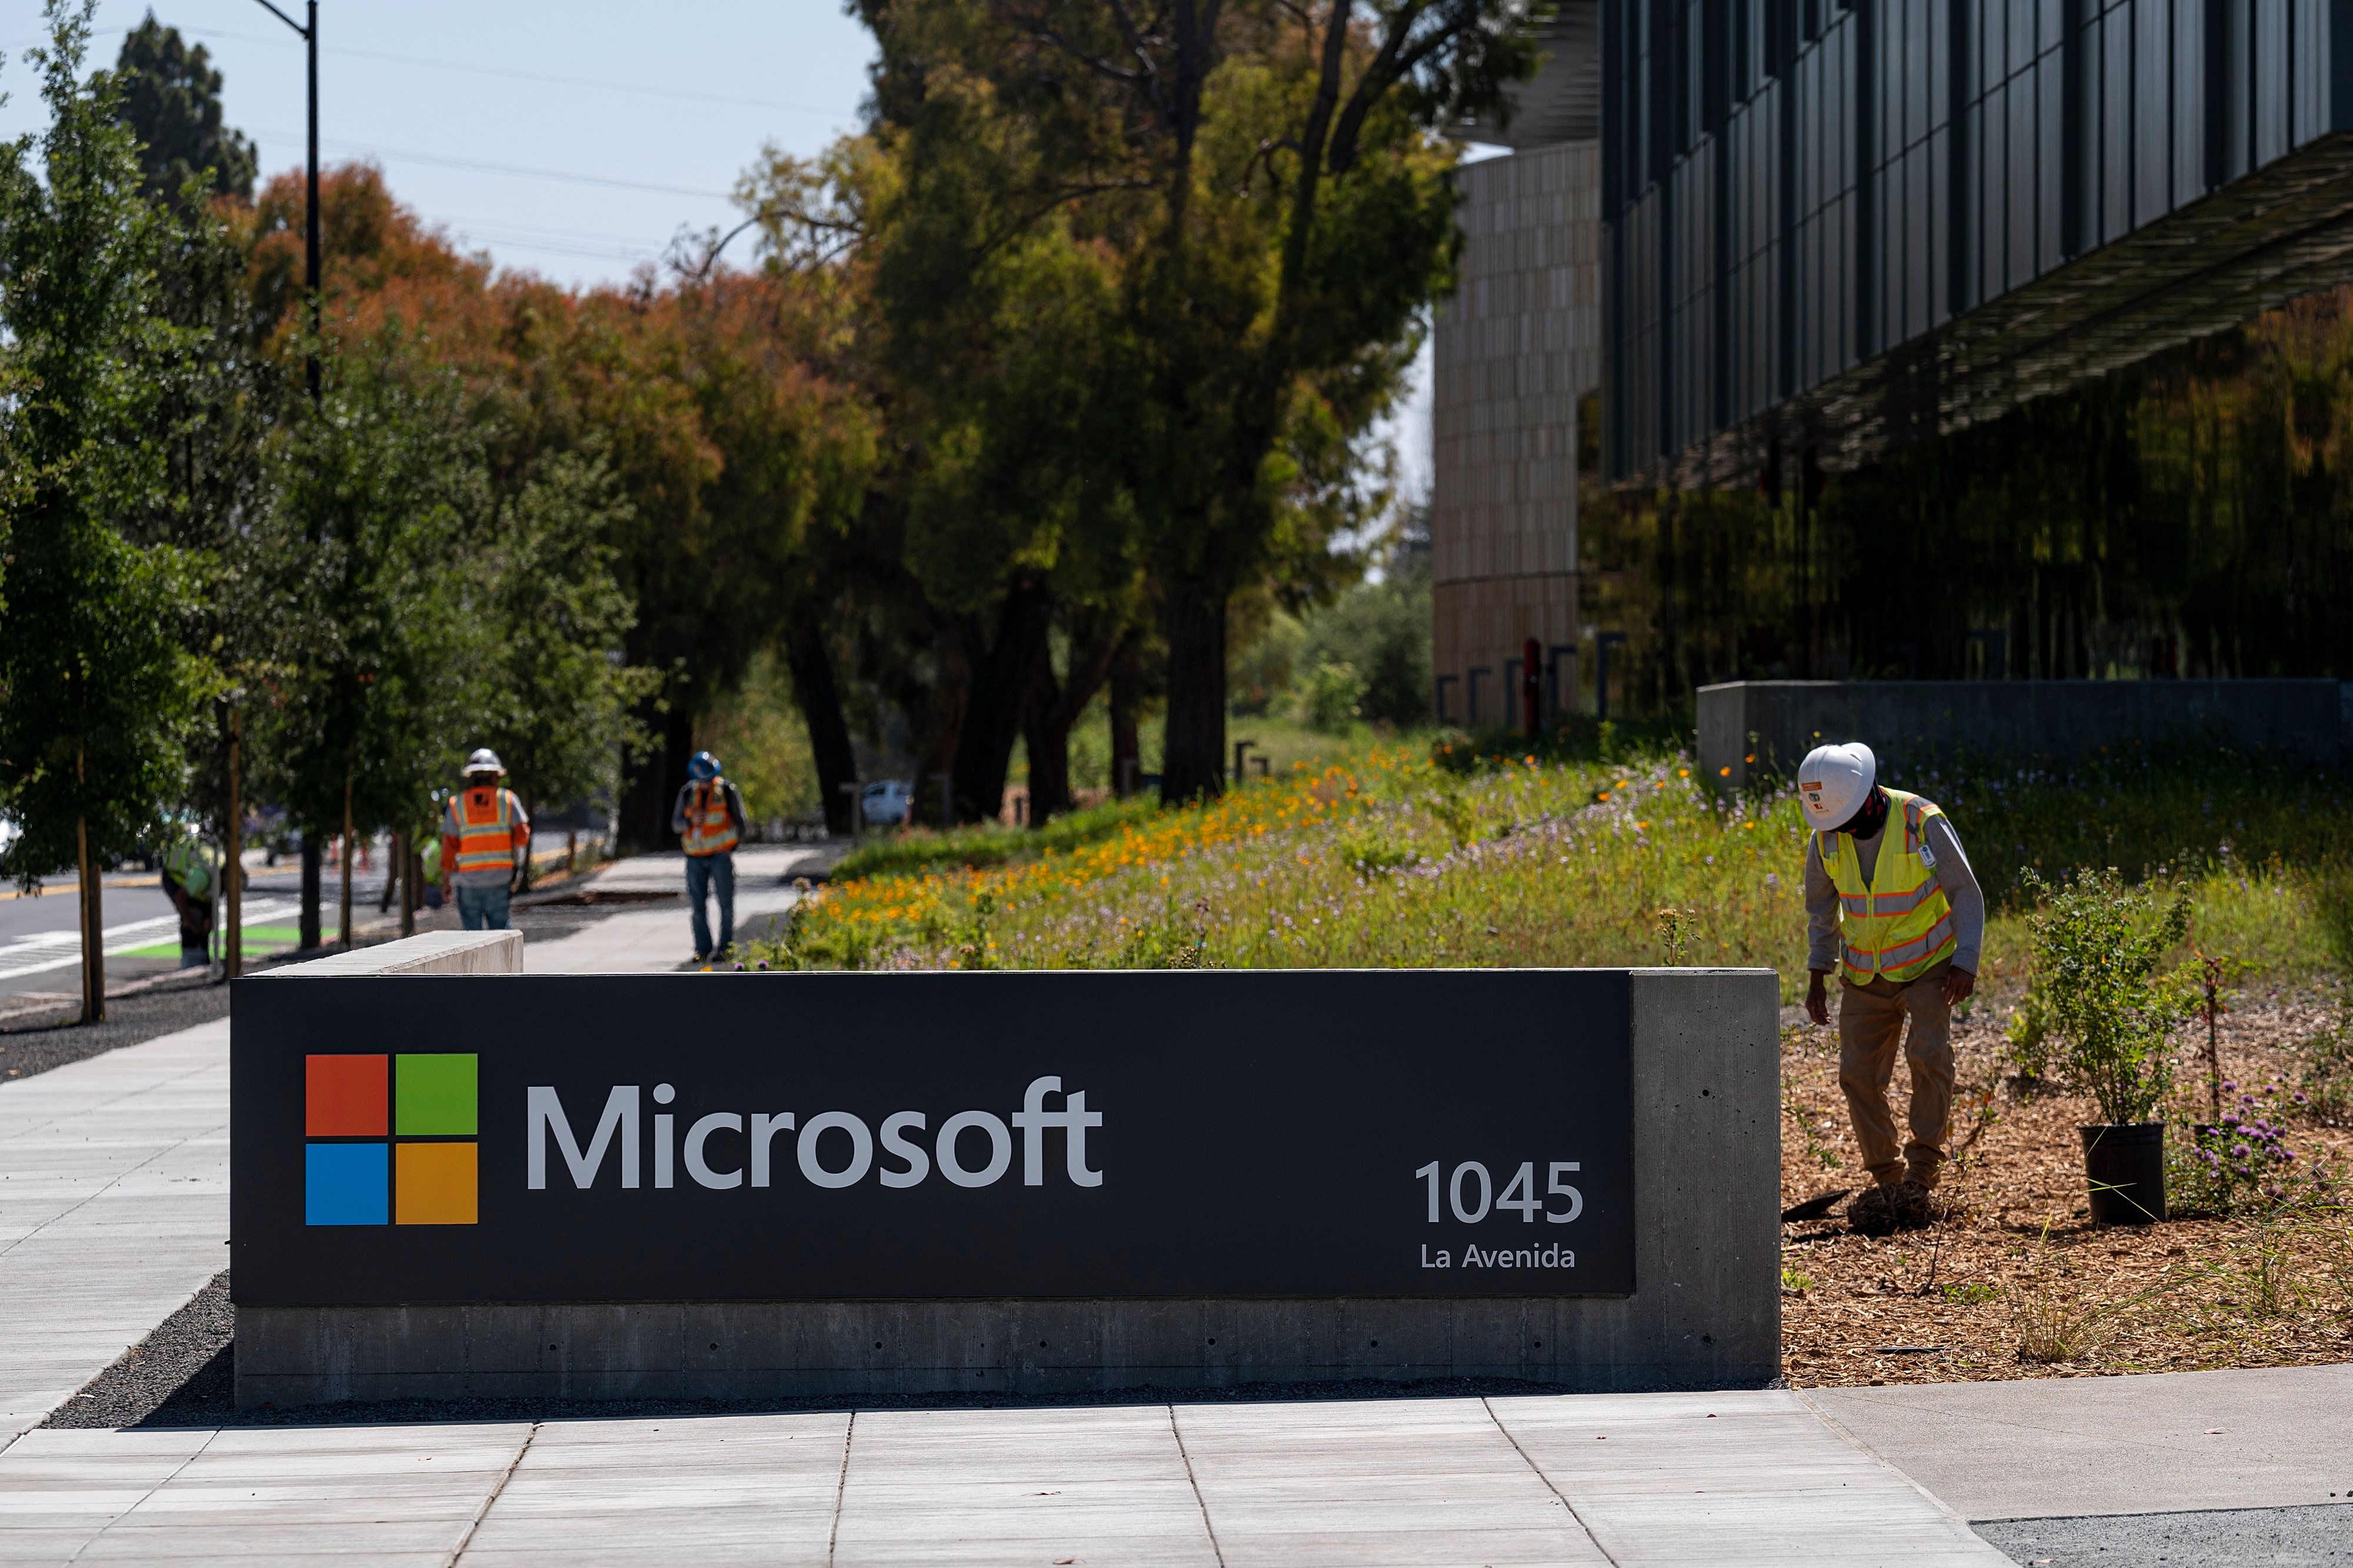 A Microsoft Campus Ahead Of Earnings Figures